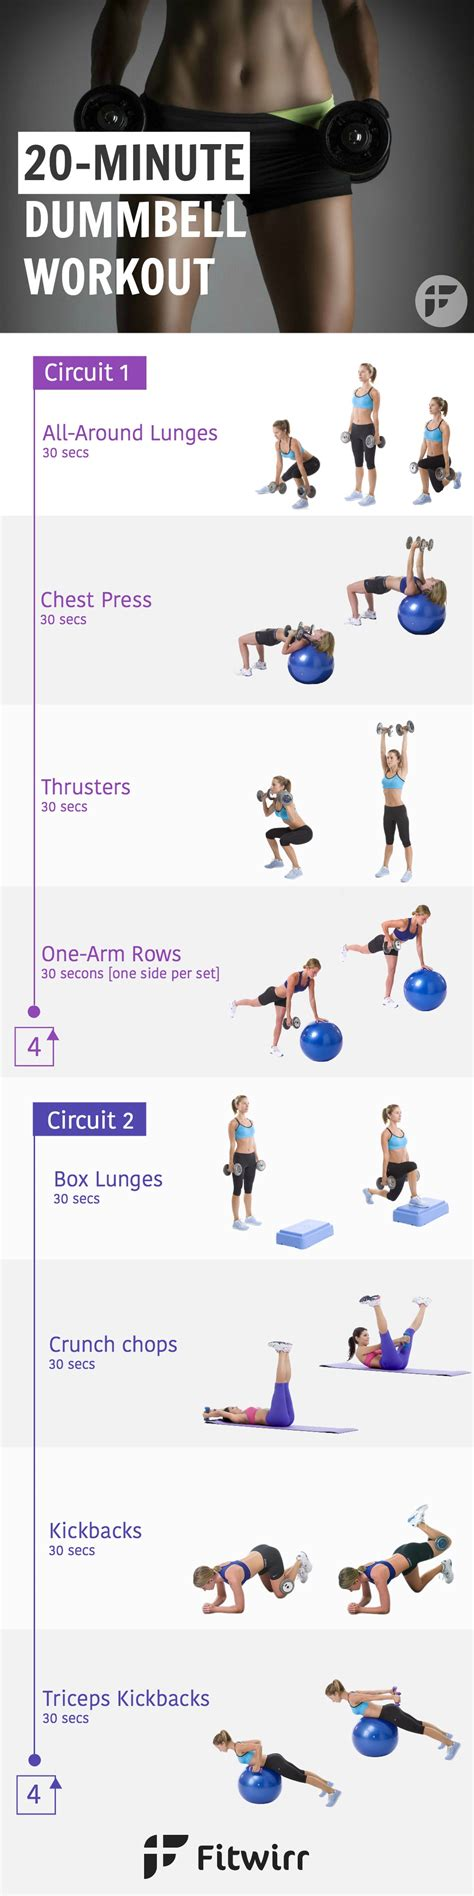 home dumbbell workout routine most popular workout programs